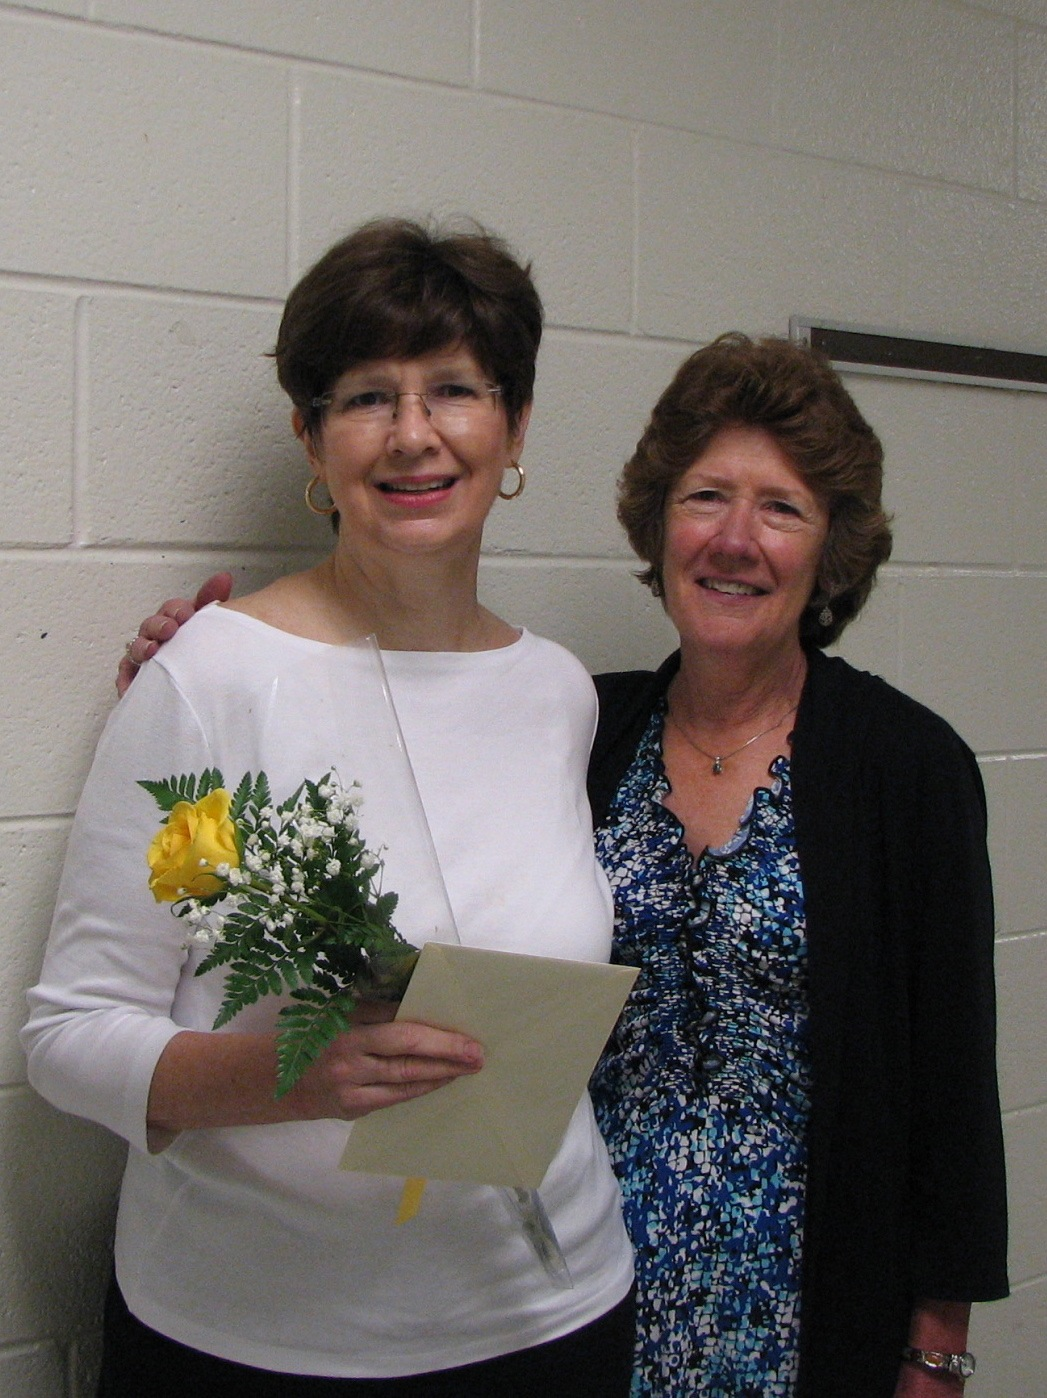 retirees-pps-melissa-gardy-with-pef-rep-nancy-hirschberg-2012.jpg